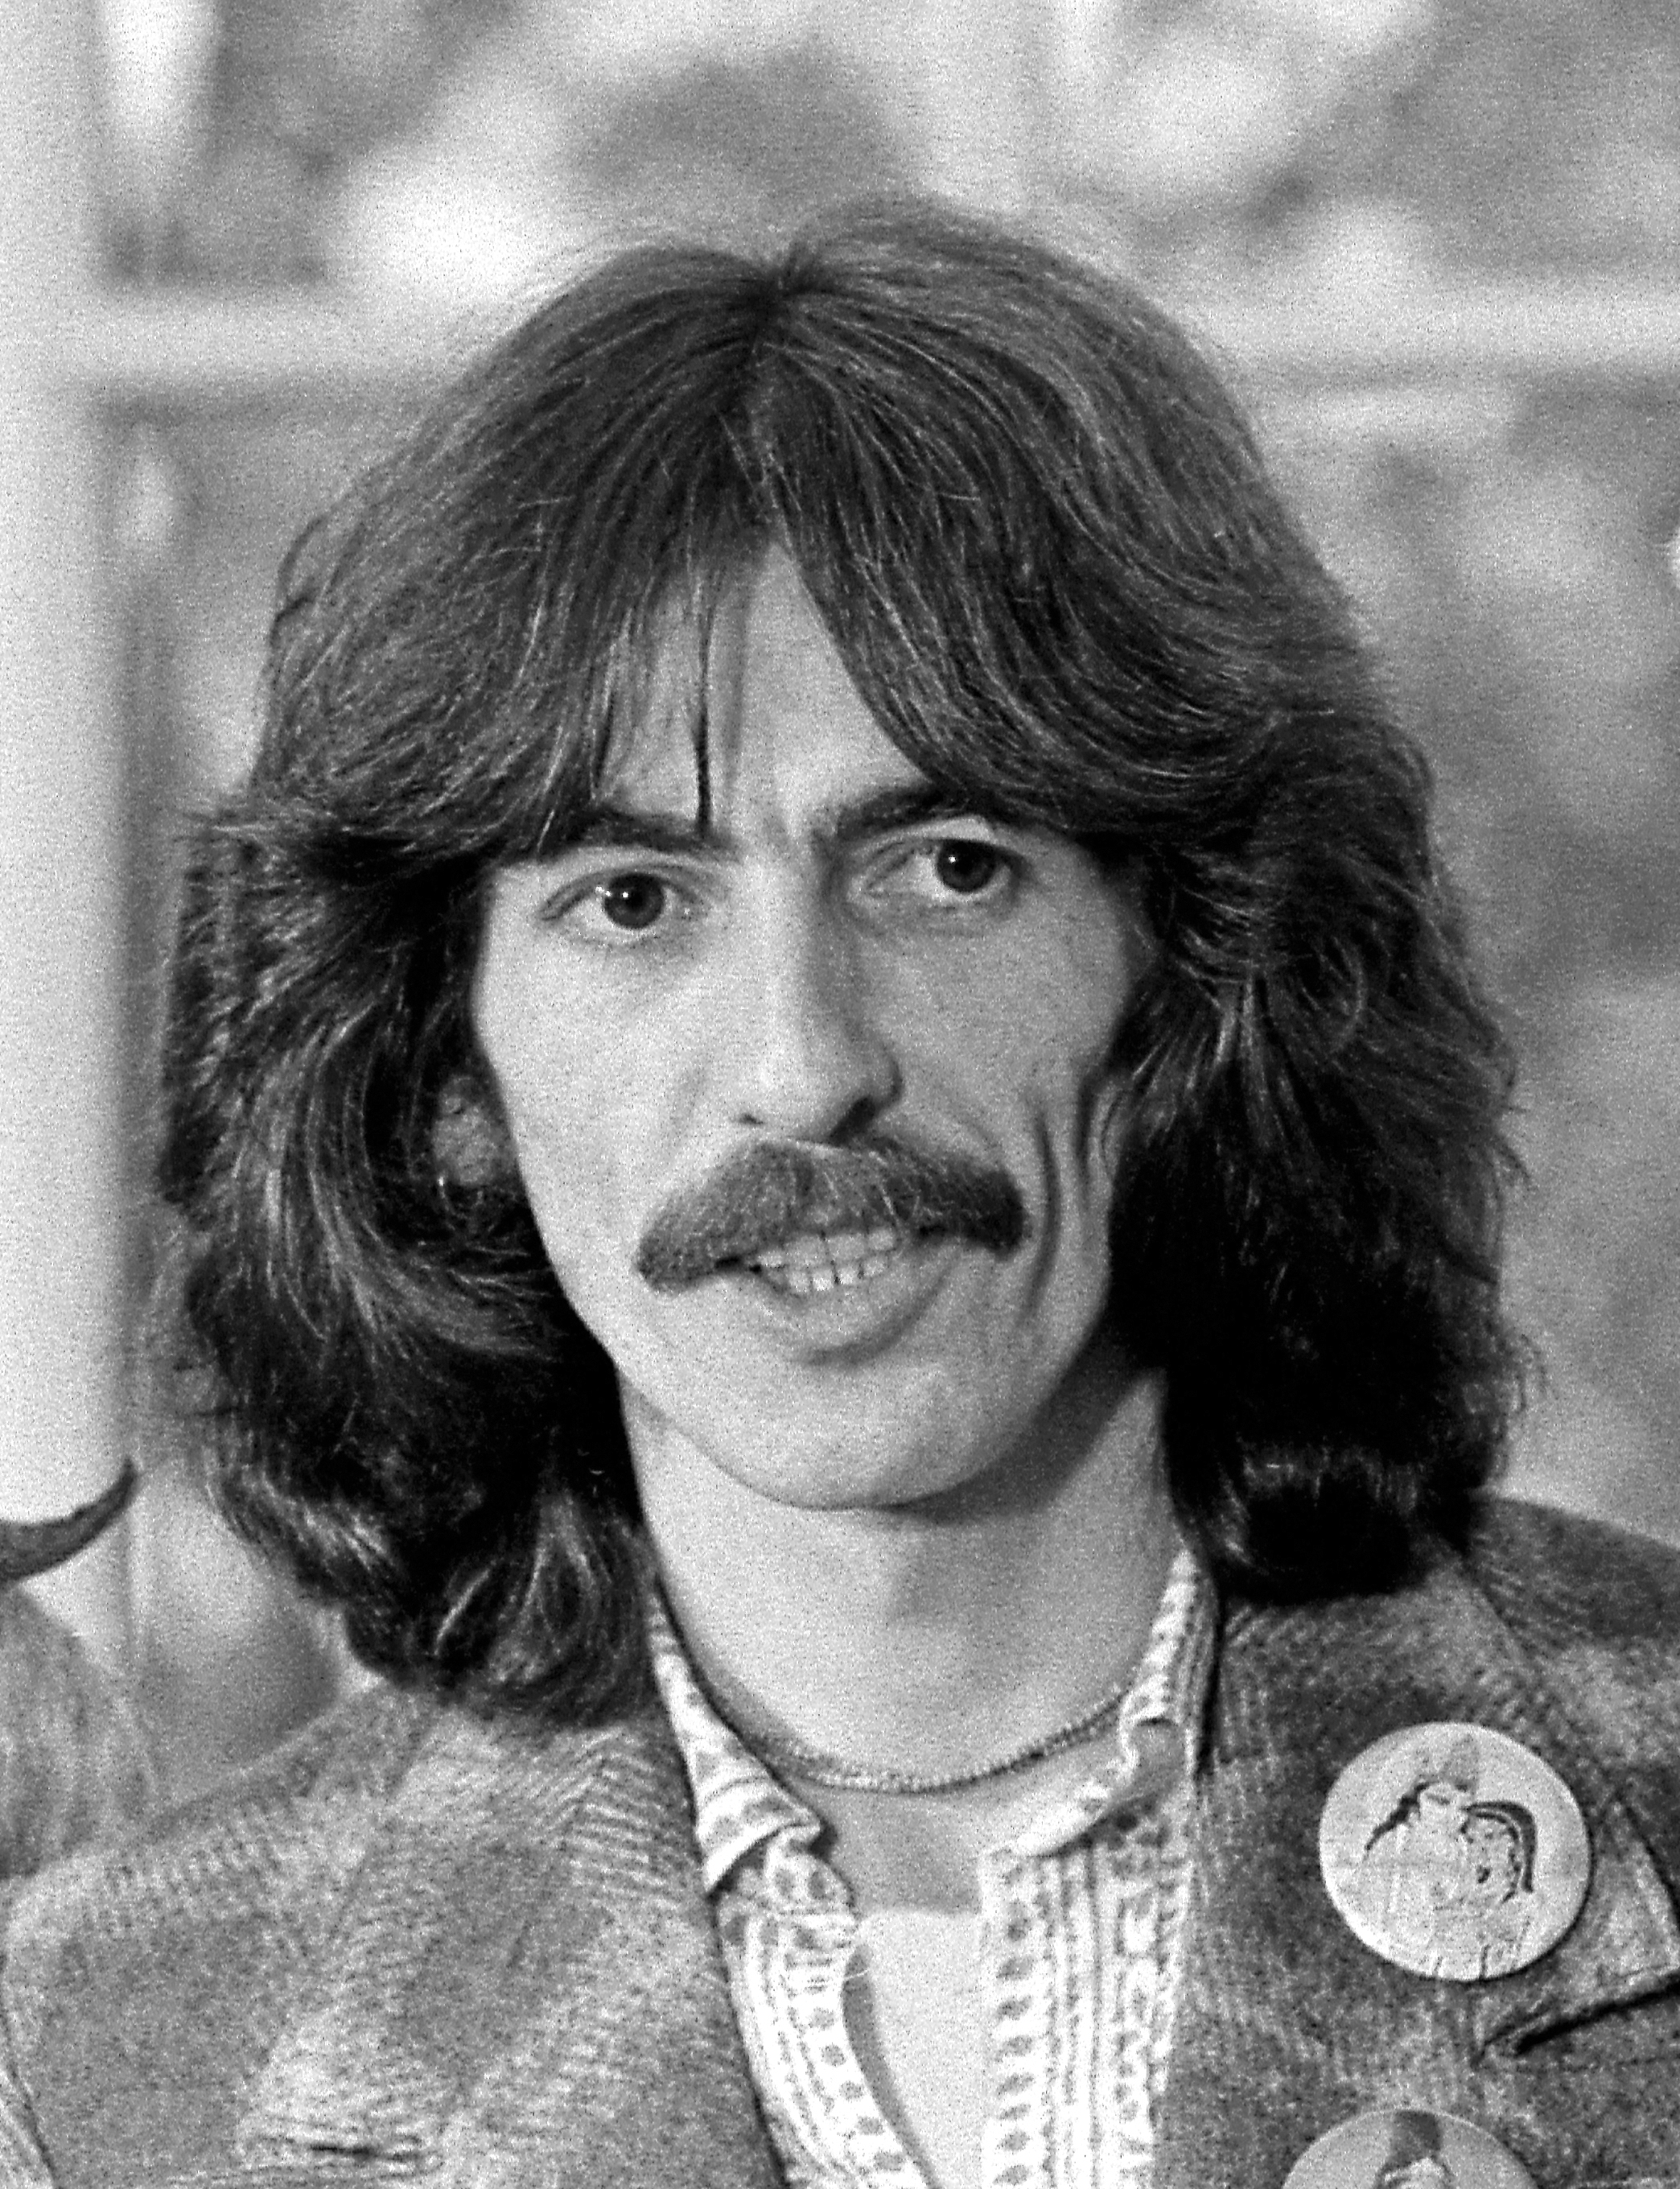 George Harrison. (Photo credit: Wikipedia)